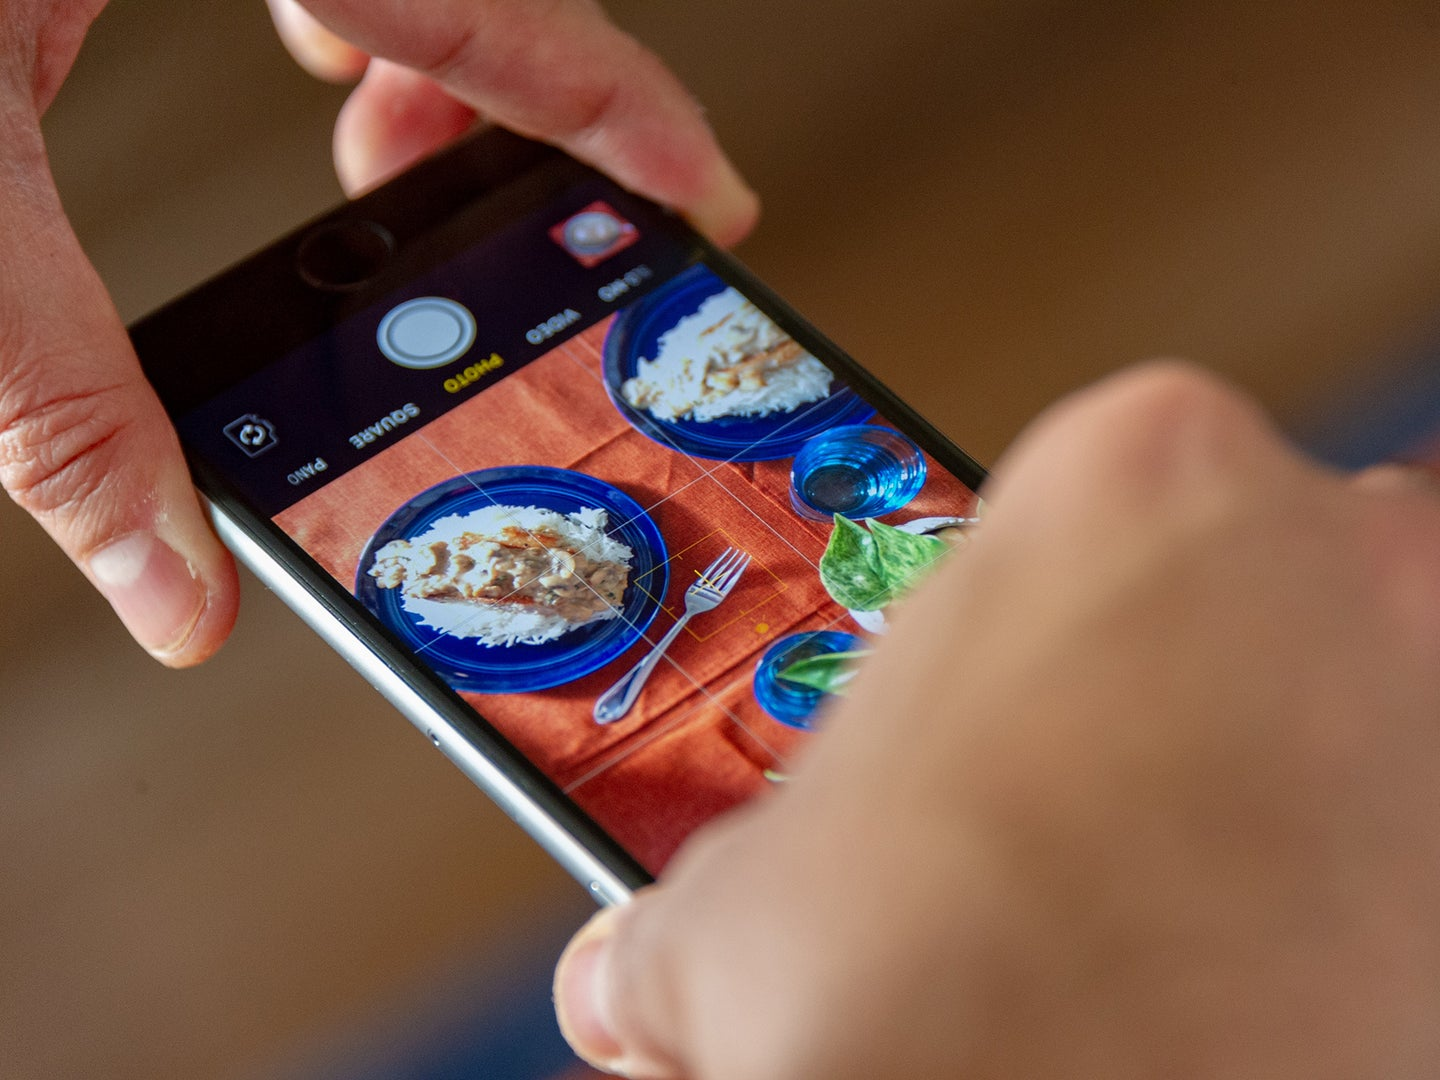 A person using their iPhone to take a photo of some food on a table.